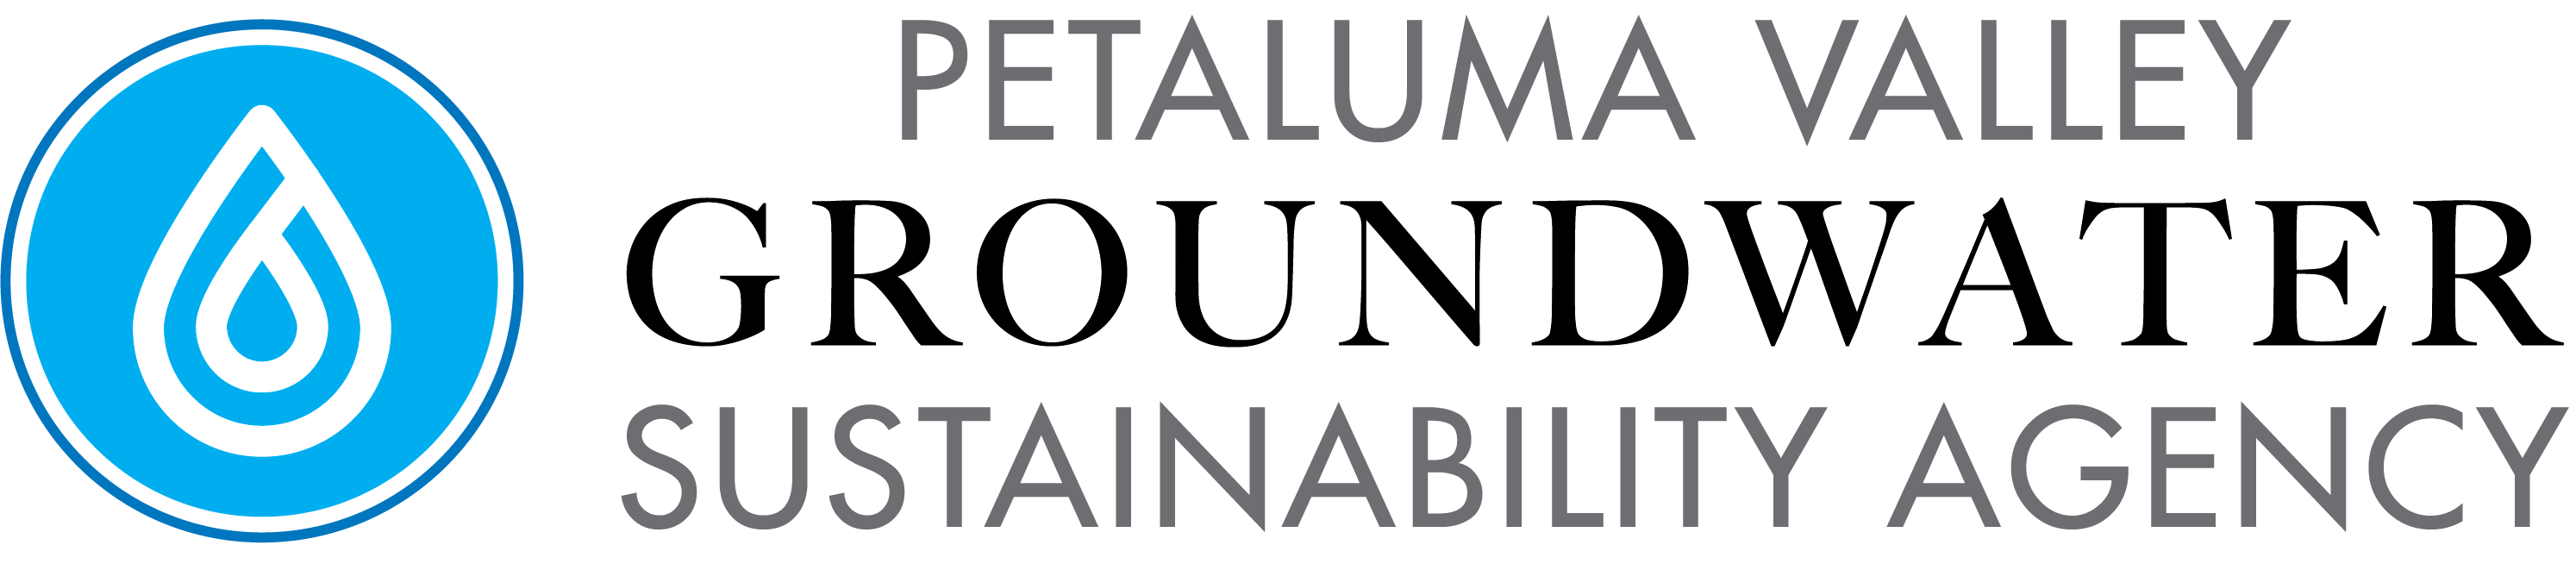 Petaluma Valley Groundwater Sustainability Agency